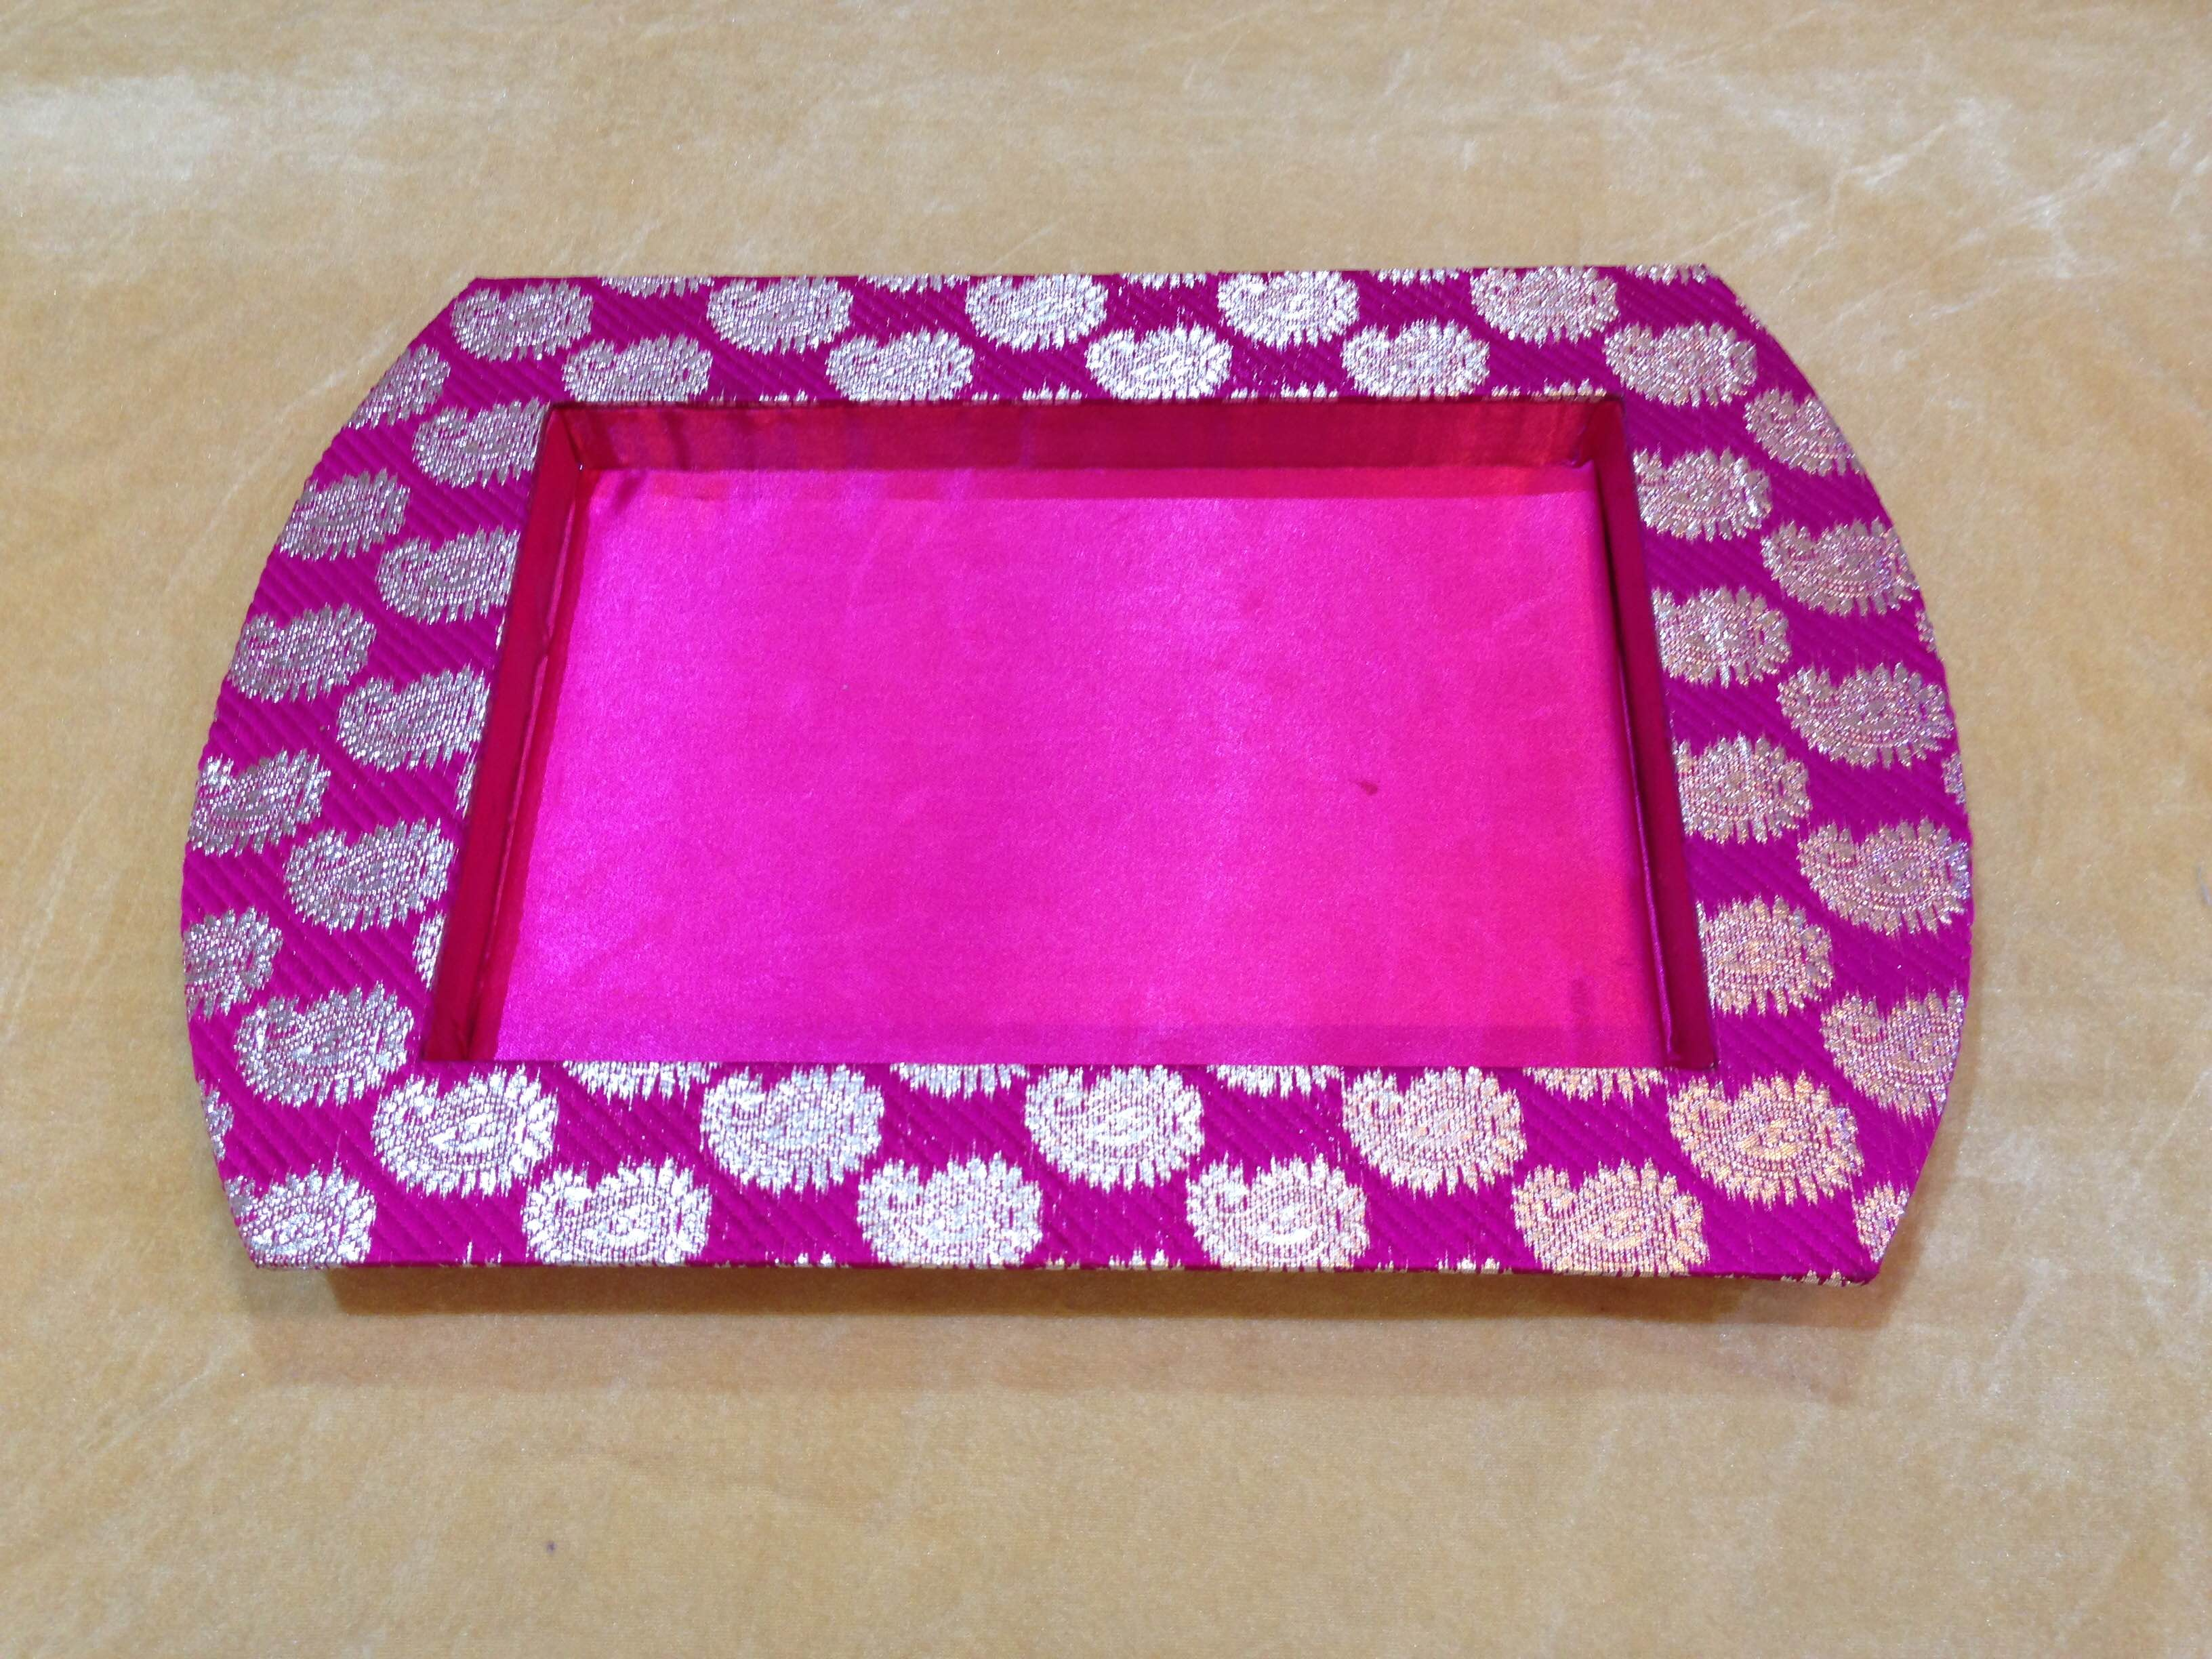 Fancy Dry Fruit Tray  We are leading manufacturer, supplier and wholesaler of Fancy Dry Fruit Tray in Delhi